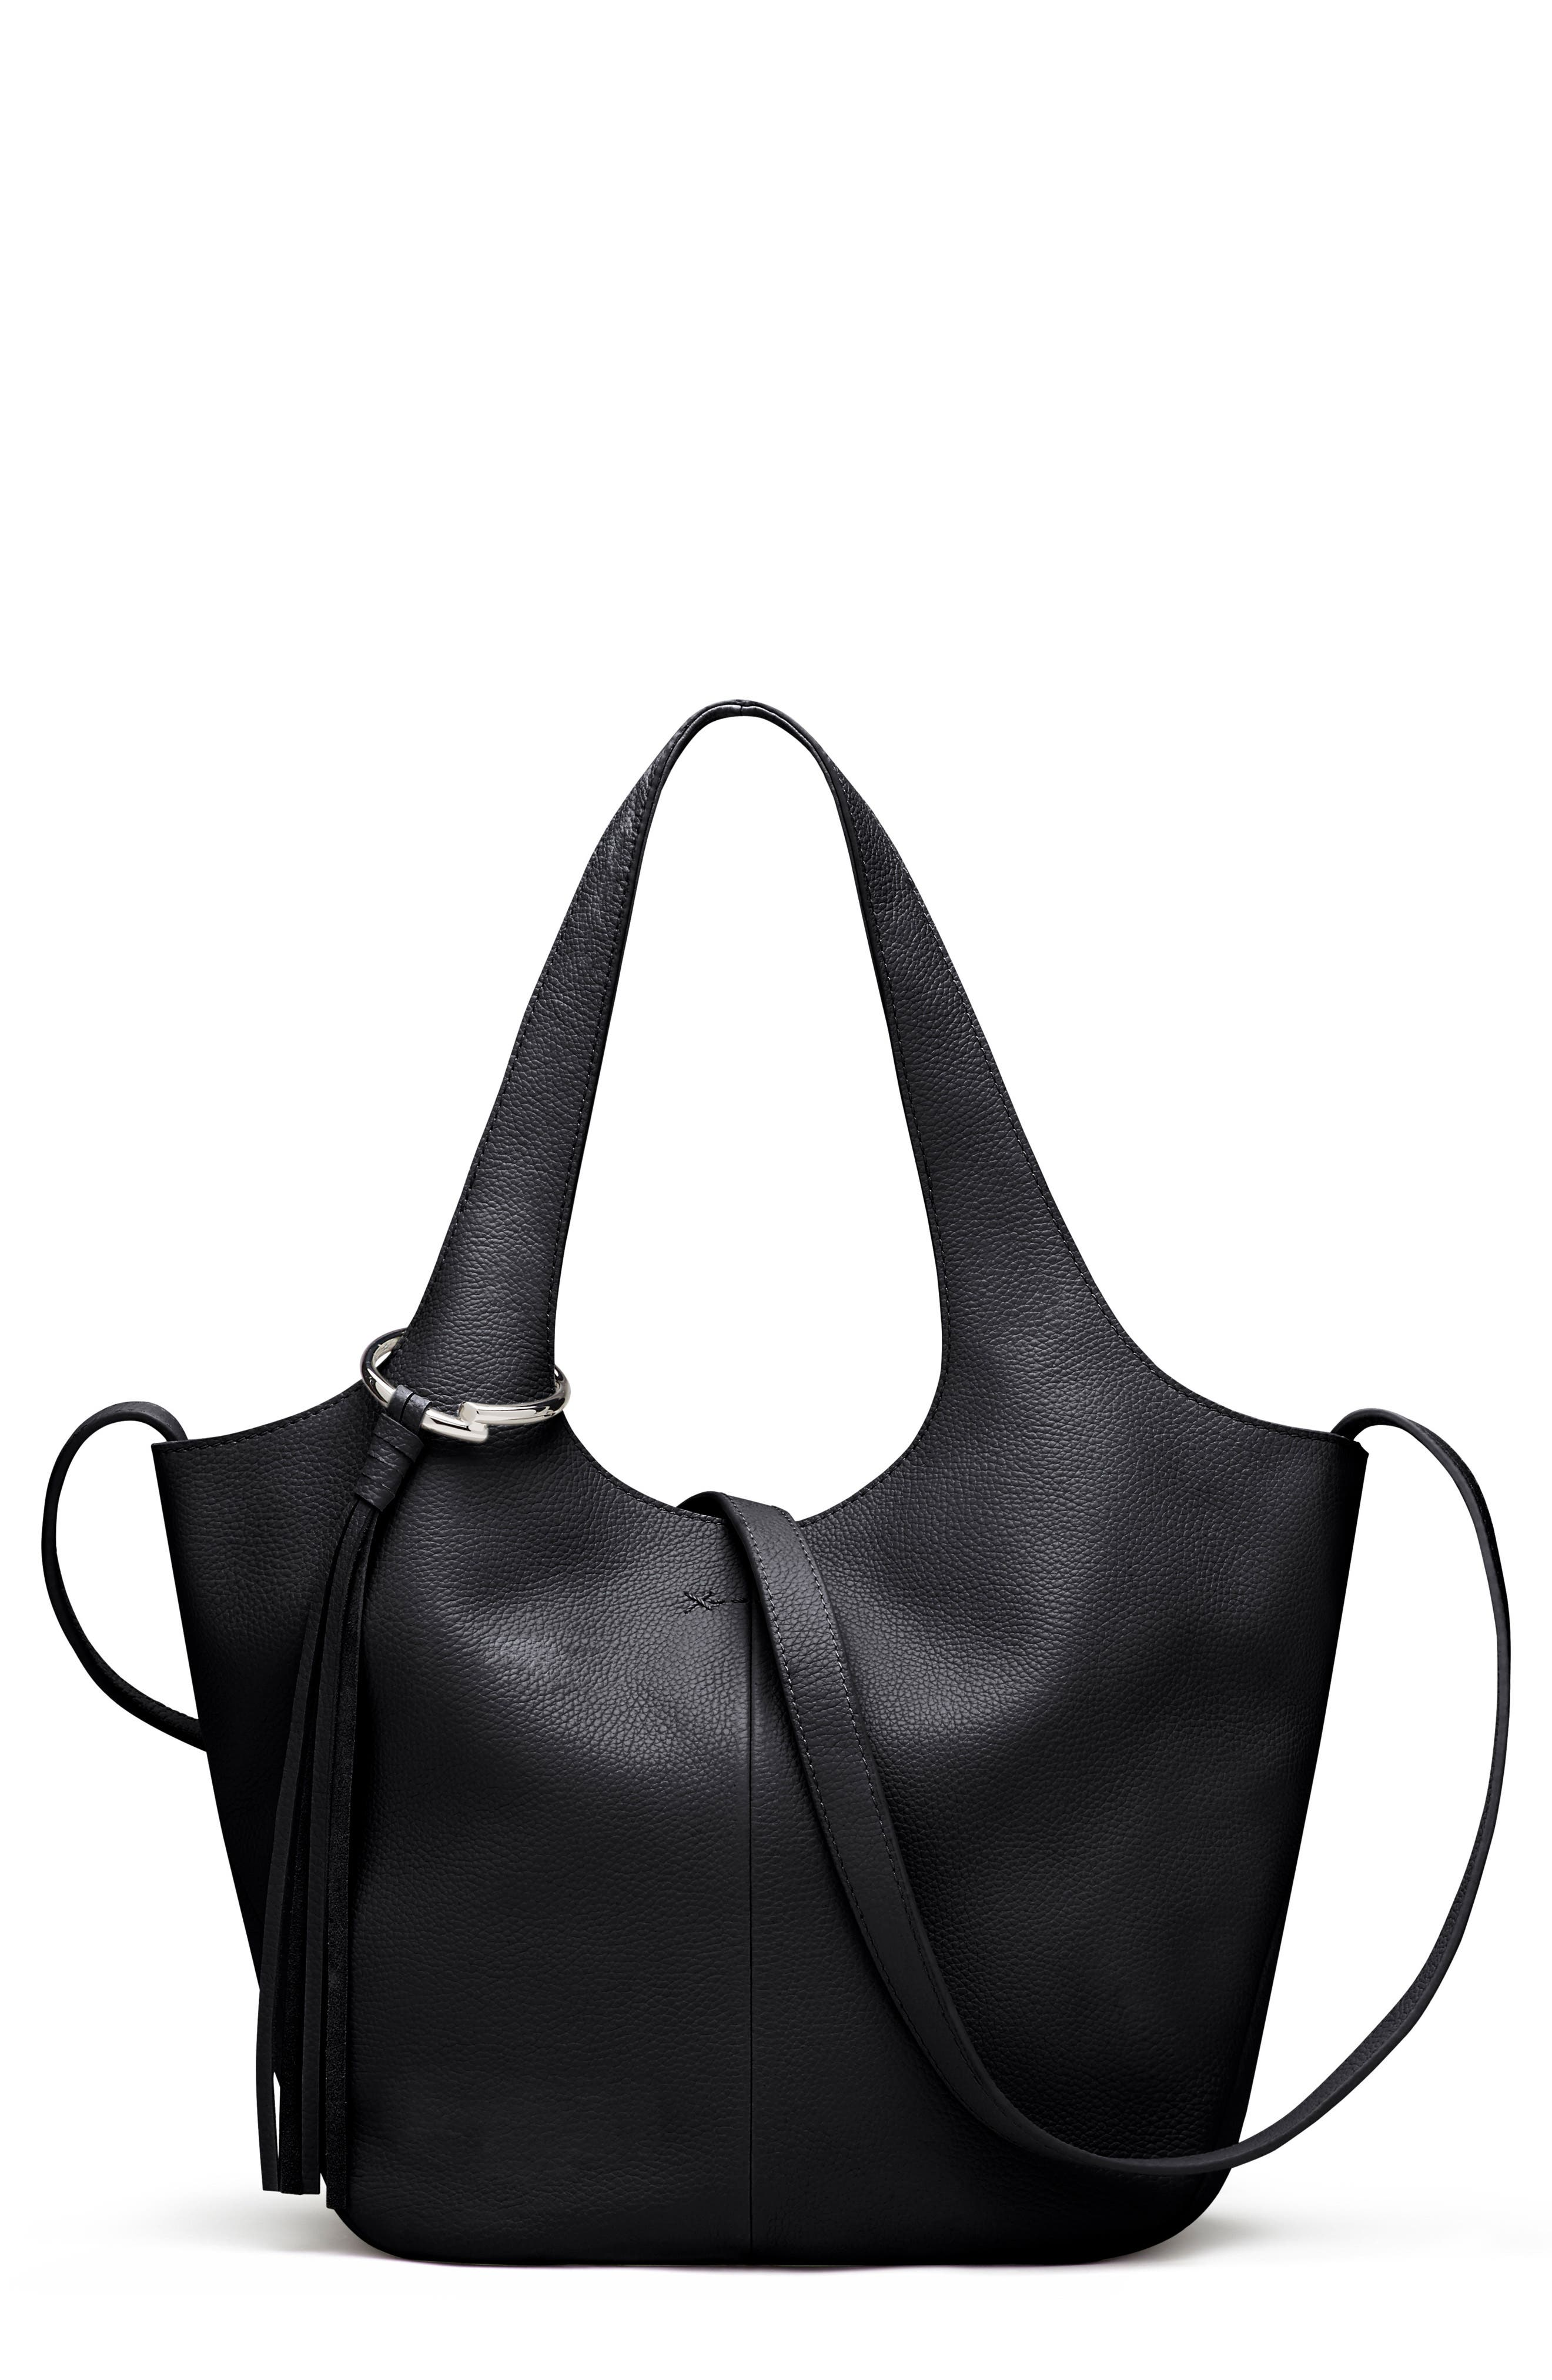 Small Finley Leather Shopper,                             Main thumbnail 1, color,                             001